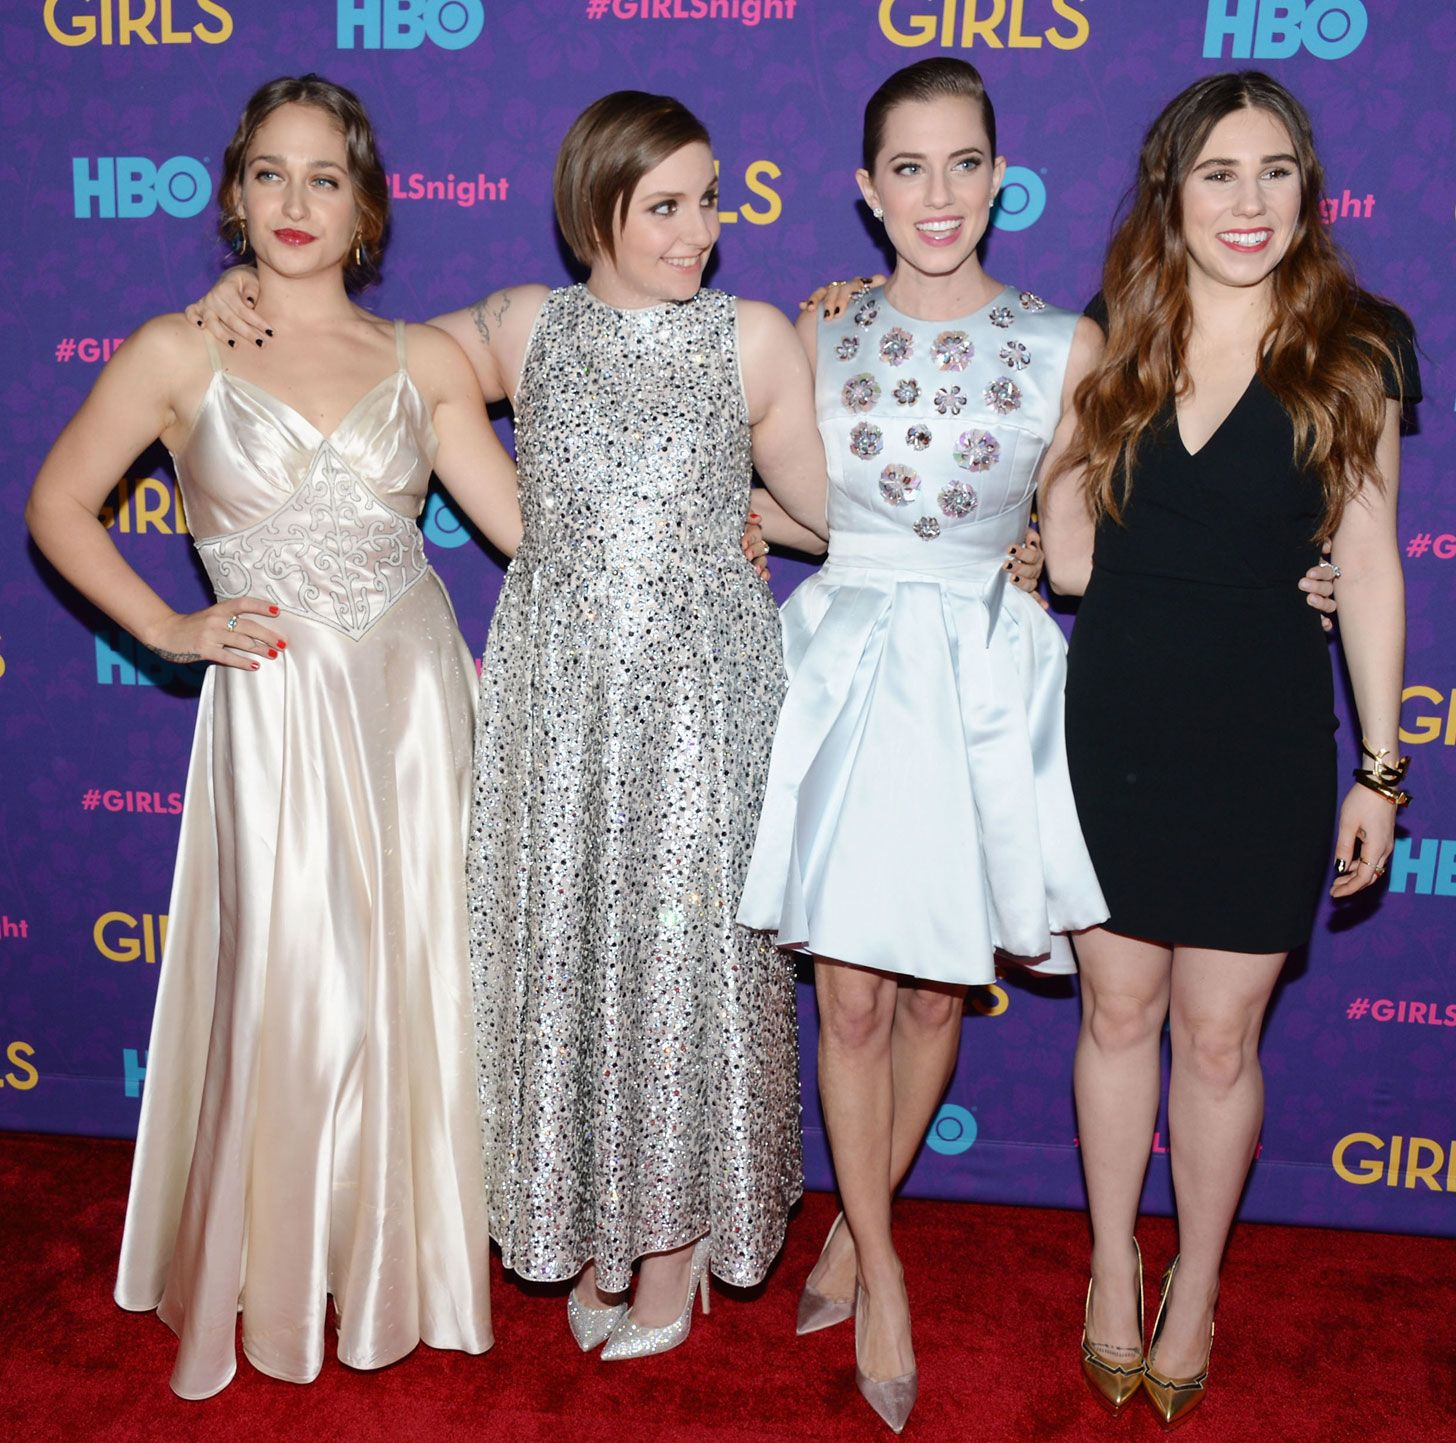 Delightful We Love A Girls Girl! (see The Looks From The Season 3 Premiere! Idea